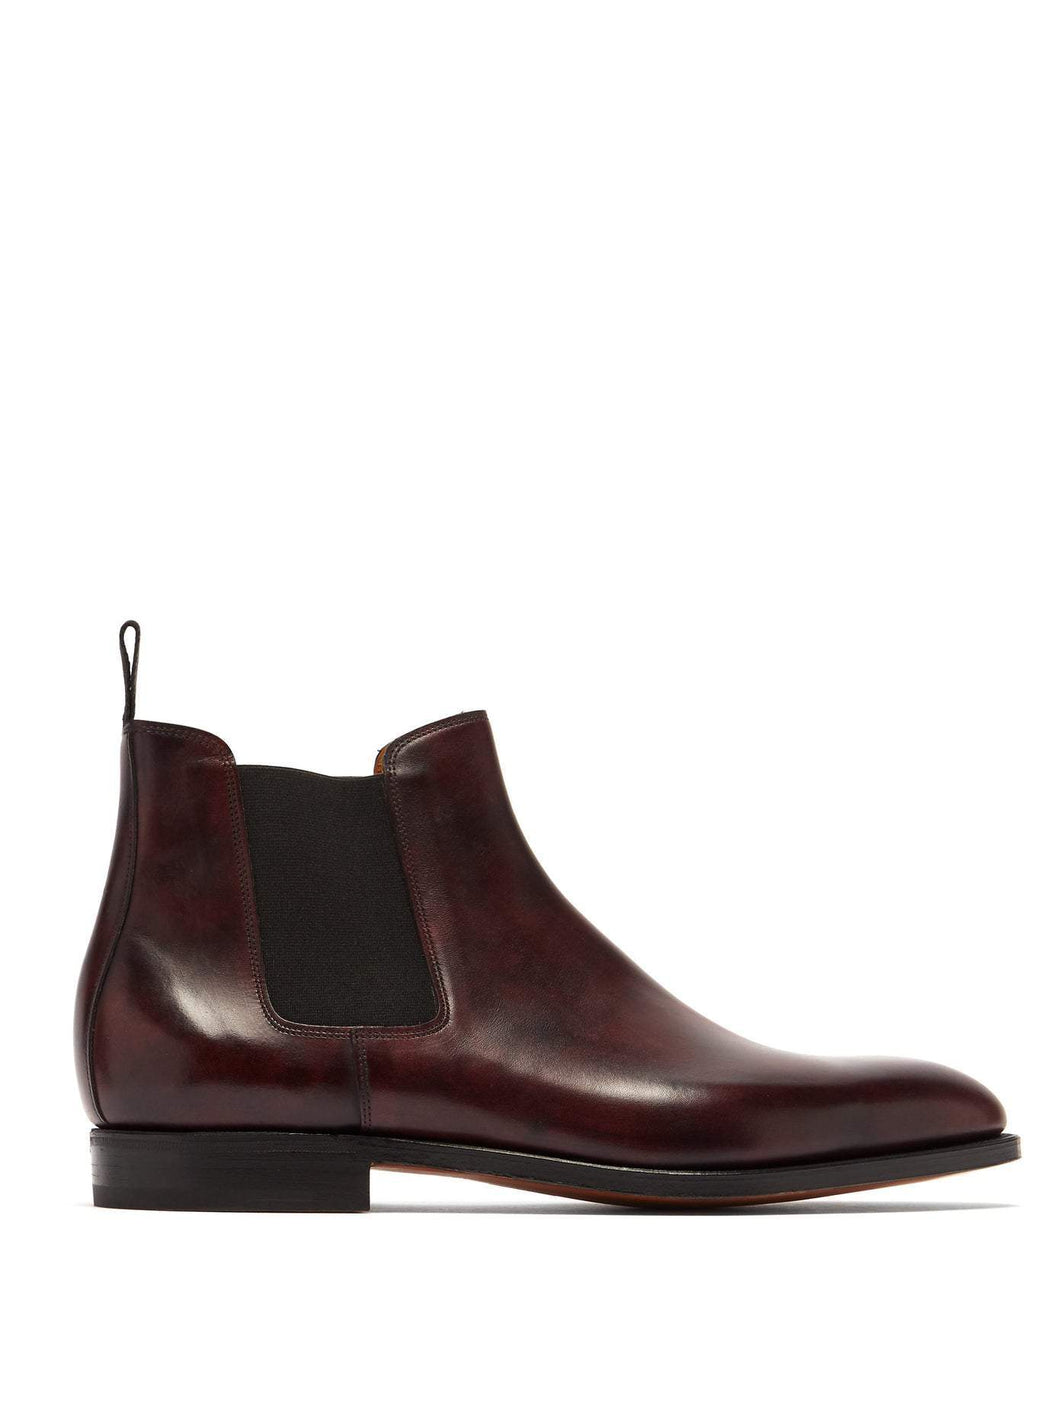 ankle high Boots Burgundy Boot Burgundy dress boot boot dress Boots Men boots Burgundy Ankle boots men's boot Burgundy Chelsea boots Handmade Boot boots shoes Chelsea oxfords Chelsea Boot Casual Boot  Party Boots fashion Men fashions Designer Boots Men's Dress boot Chelsea leather boots